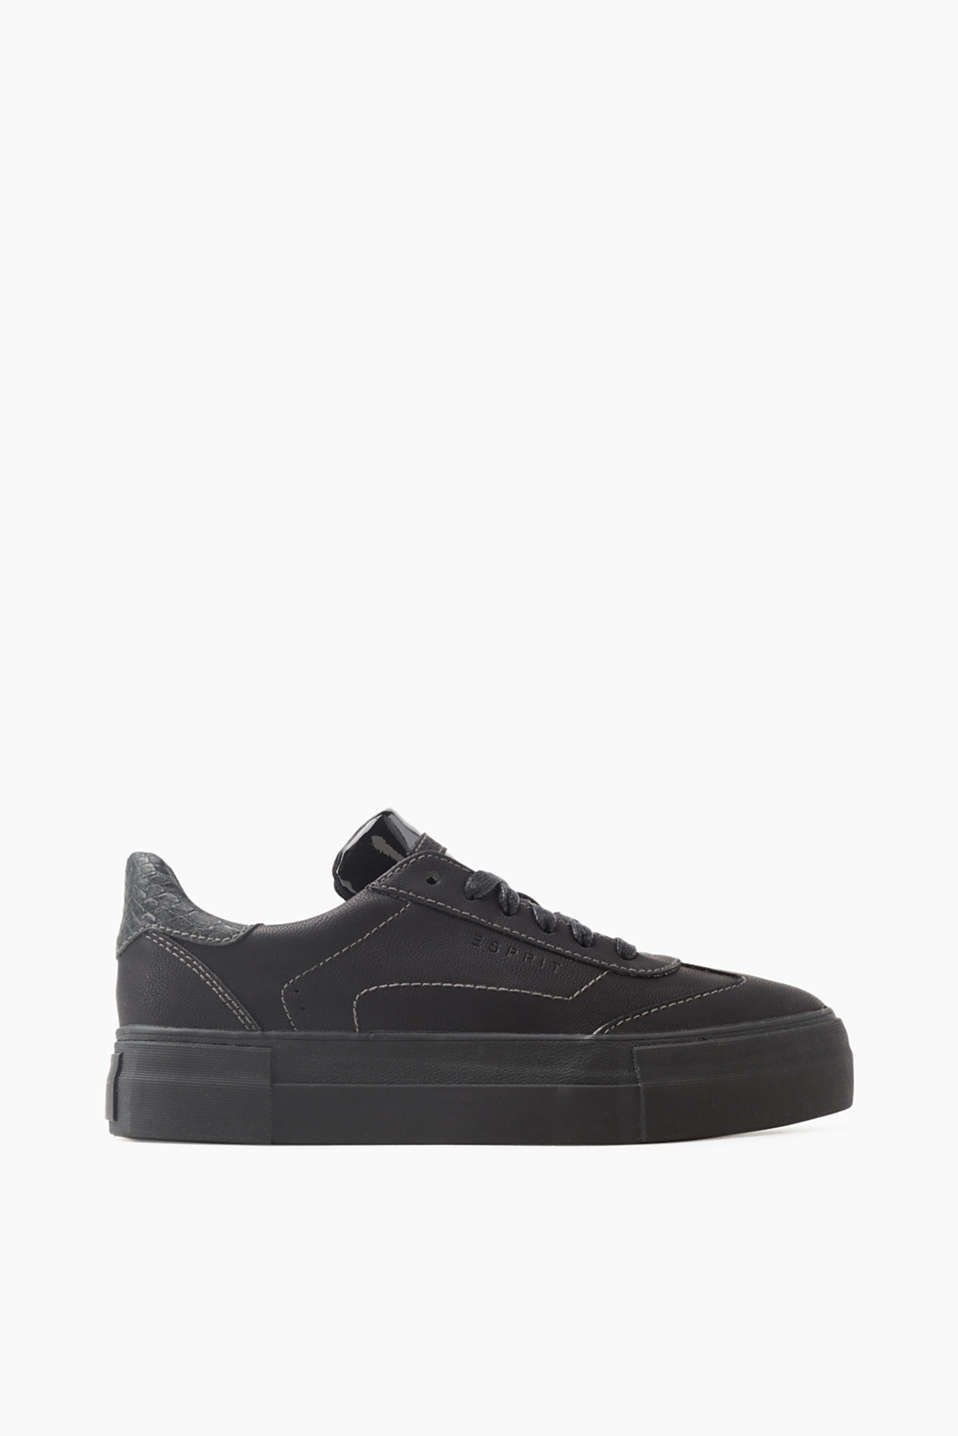 Esprit - Plateausneaker in Leder-Optik